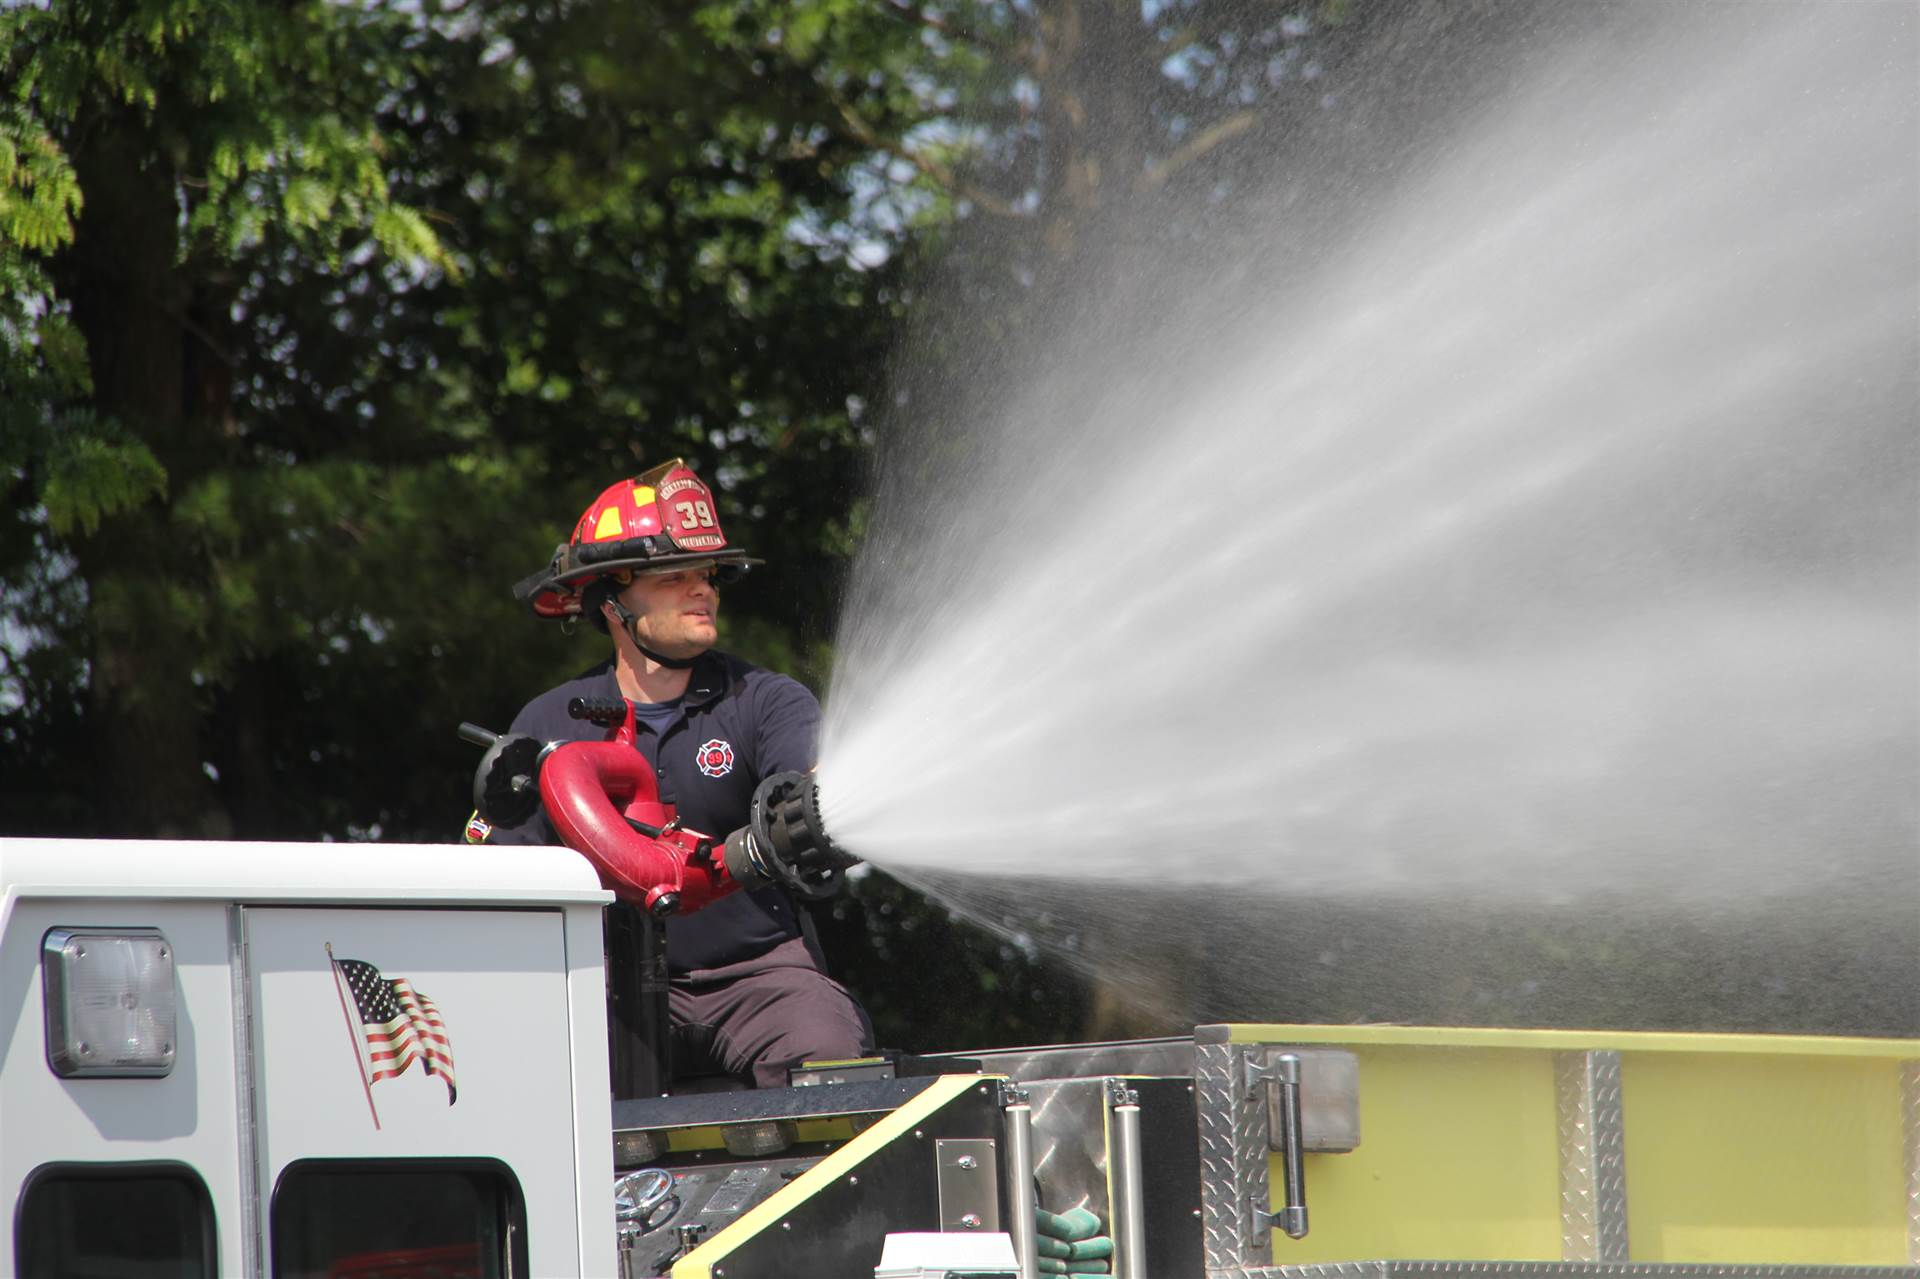 close-up of chenango bridge fire fighter spraying hose